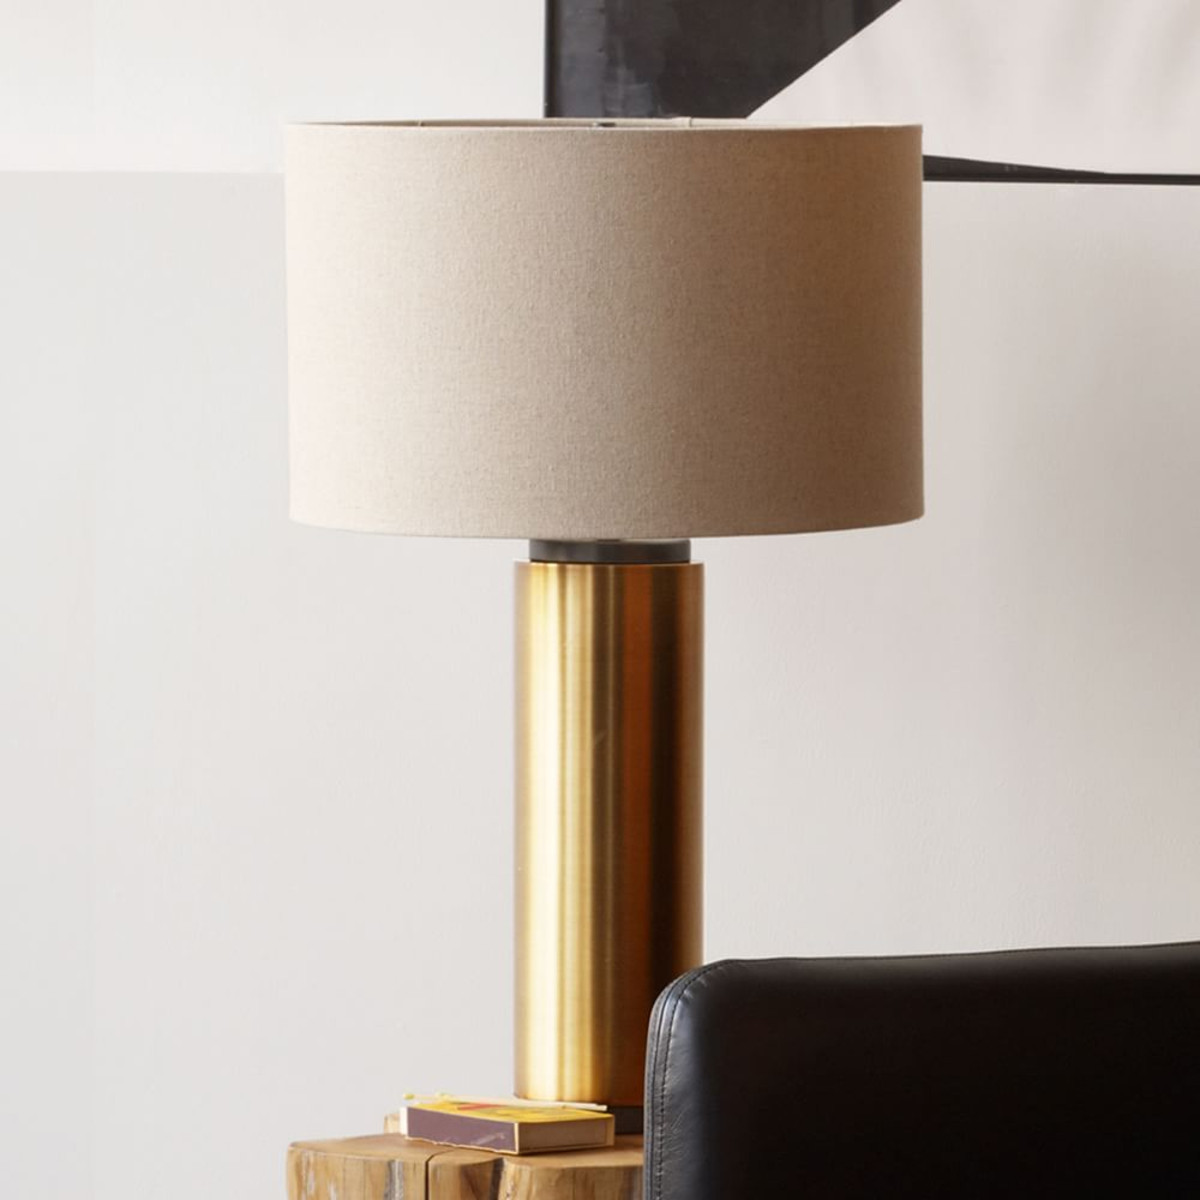 Best ideas about Brass Desk Lamp . Save or Pin Pillar Table Lamp Antique Brass Now.